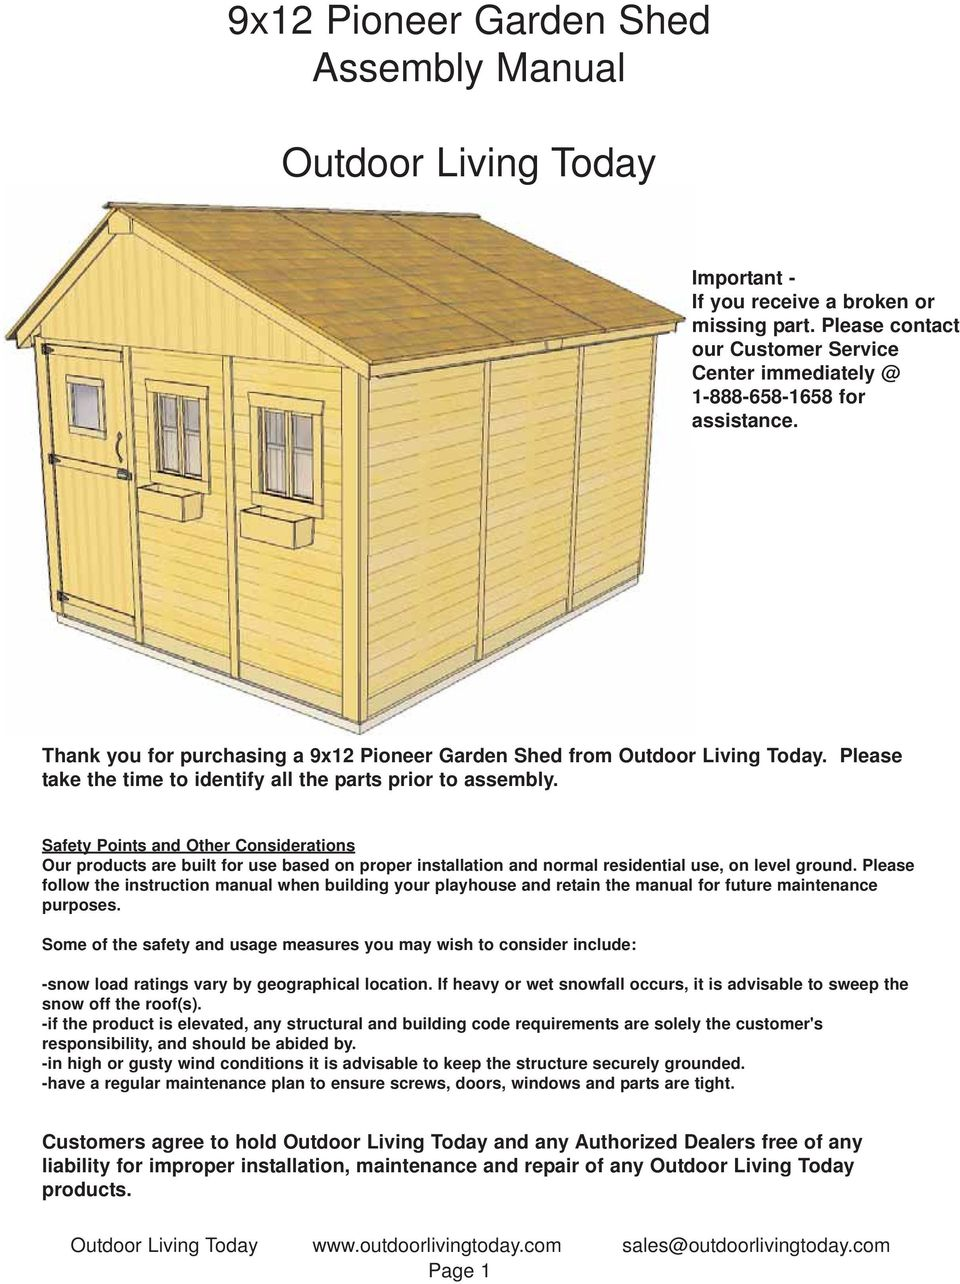 9x12 Pioneer Garden Shed Assembly Manual  Outdoor Living Today - PDF